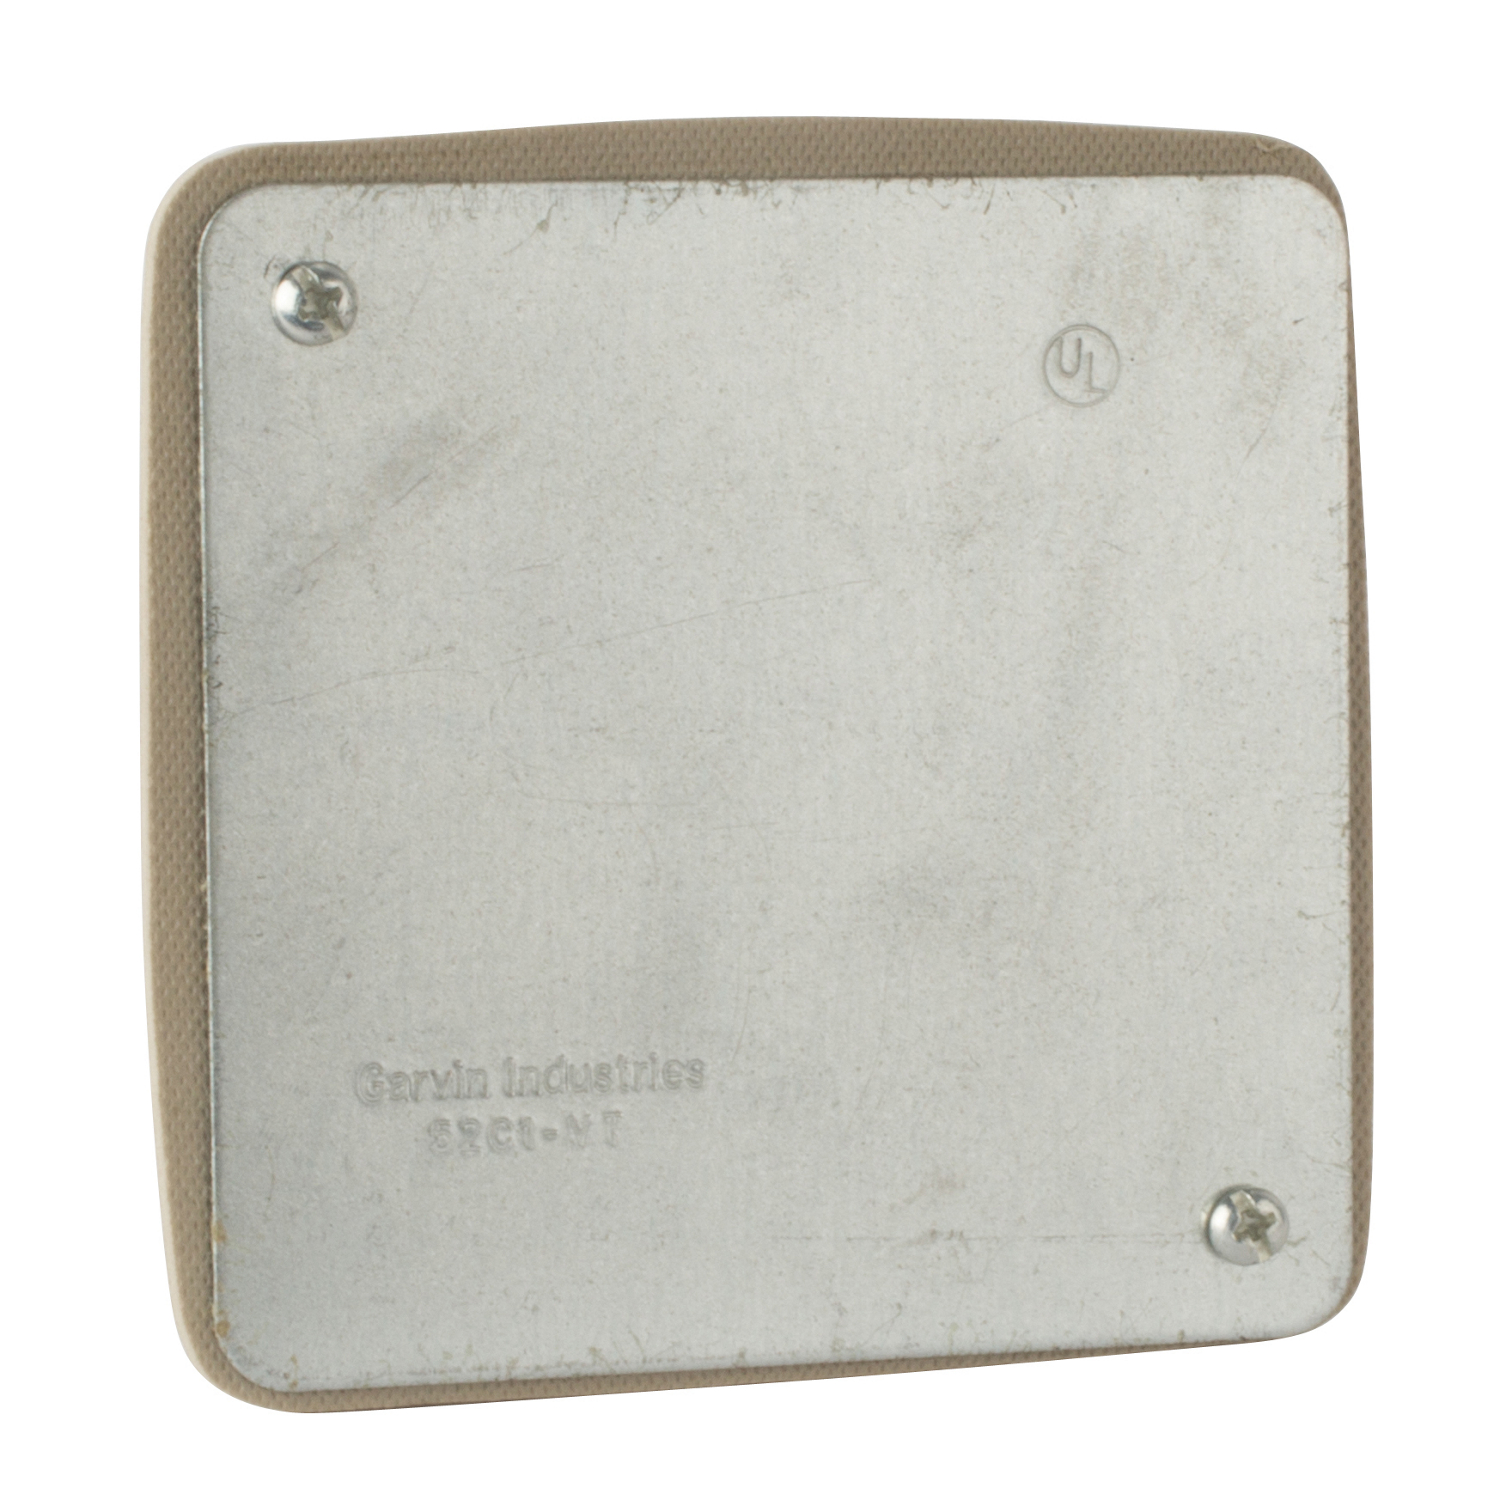 STEEL-CITY 52-C-1-VT 4-IN SQUARE COVER, FLAT, BLANK, VAPOR TIGHT